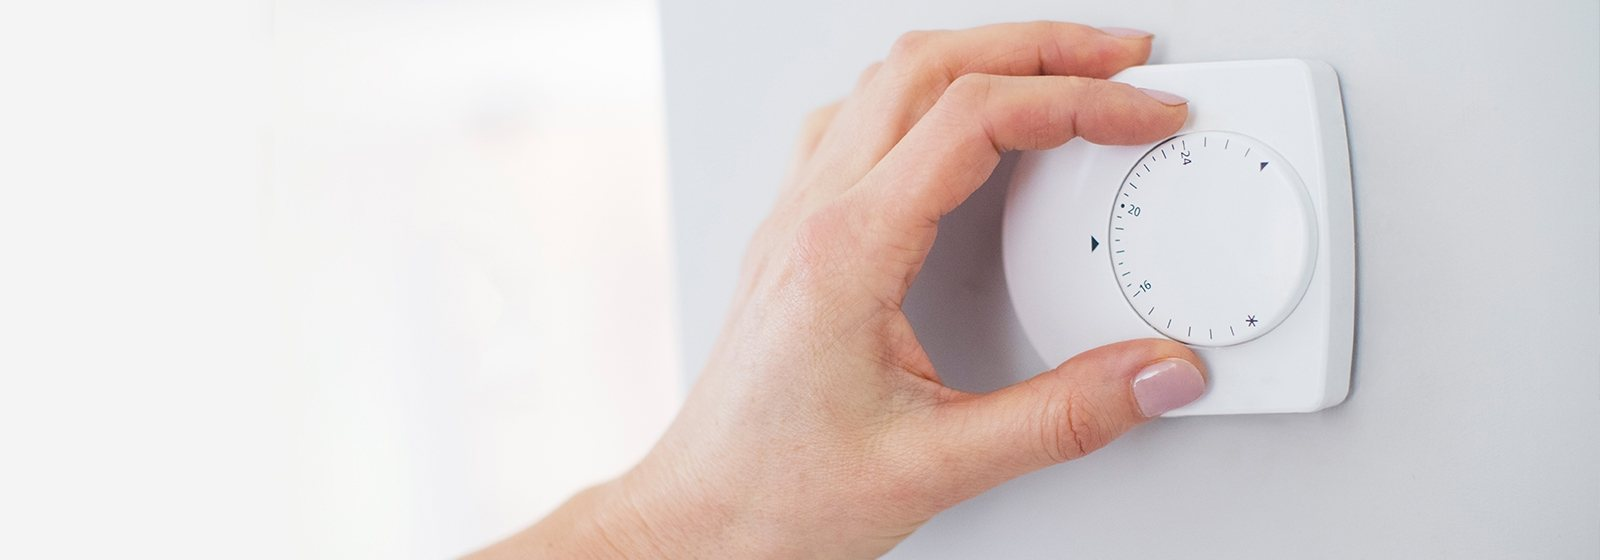 Top ways to save energy